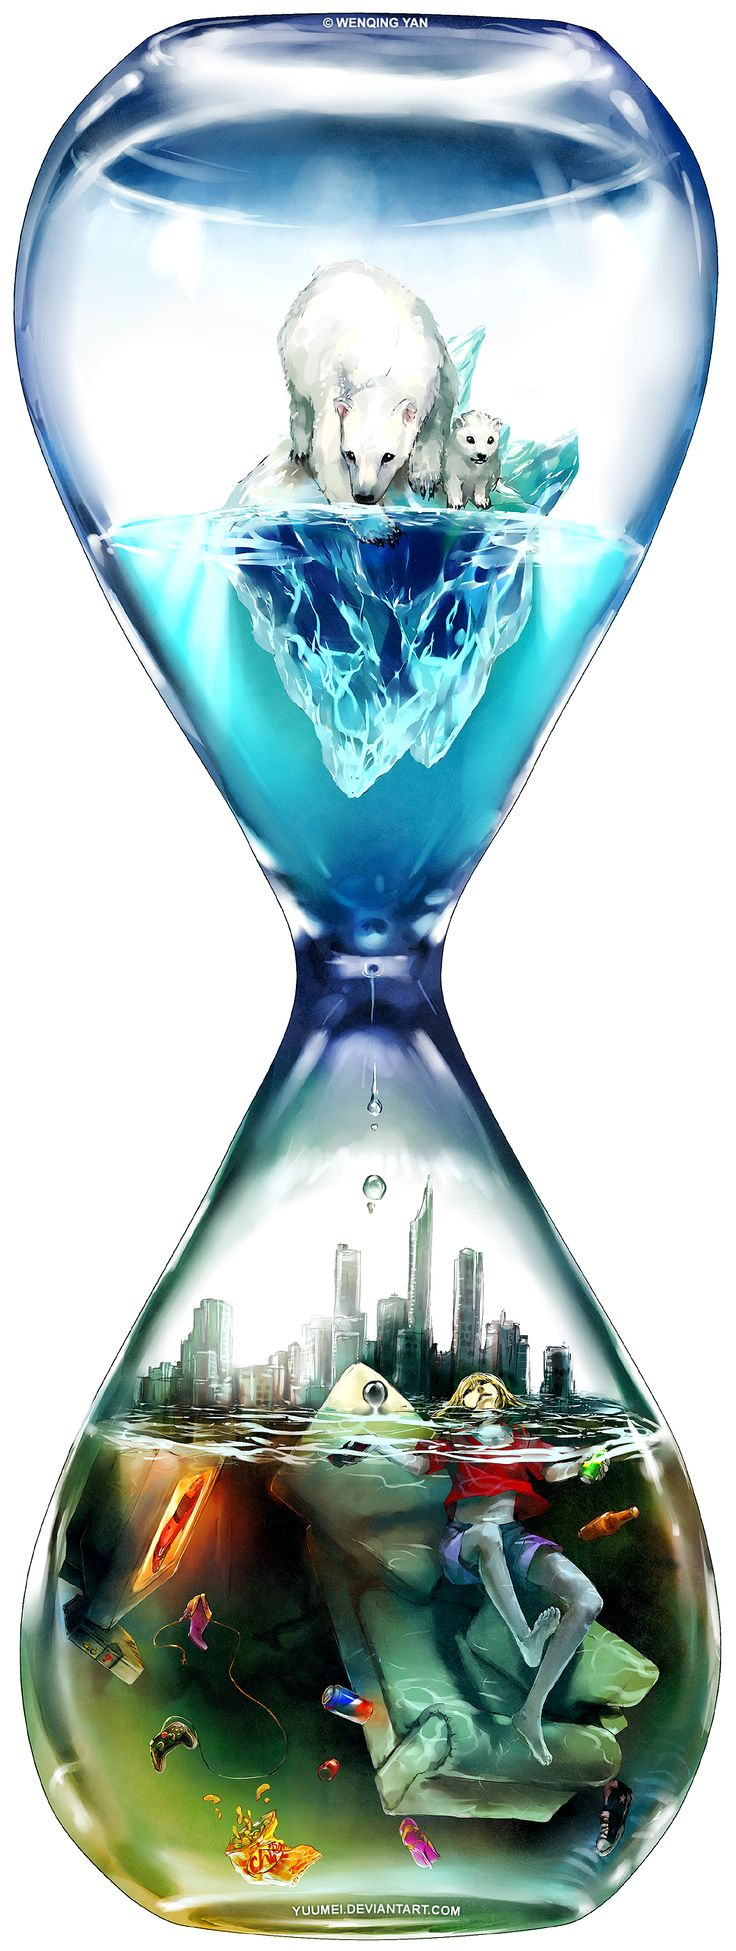 """Countdown"" by yuumei on DeviantArt While many of us enjoy the luxury of watching TV on our couch with a cold can of soda or beer, the ice caps are melting at an alarming rate. Polar bears that need the ice to hunt and survive are drowning or starving; sometimes forced to search through dumpsters to survive."